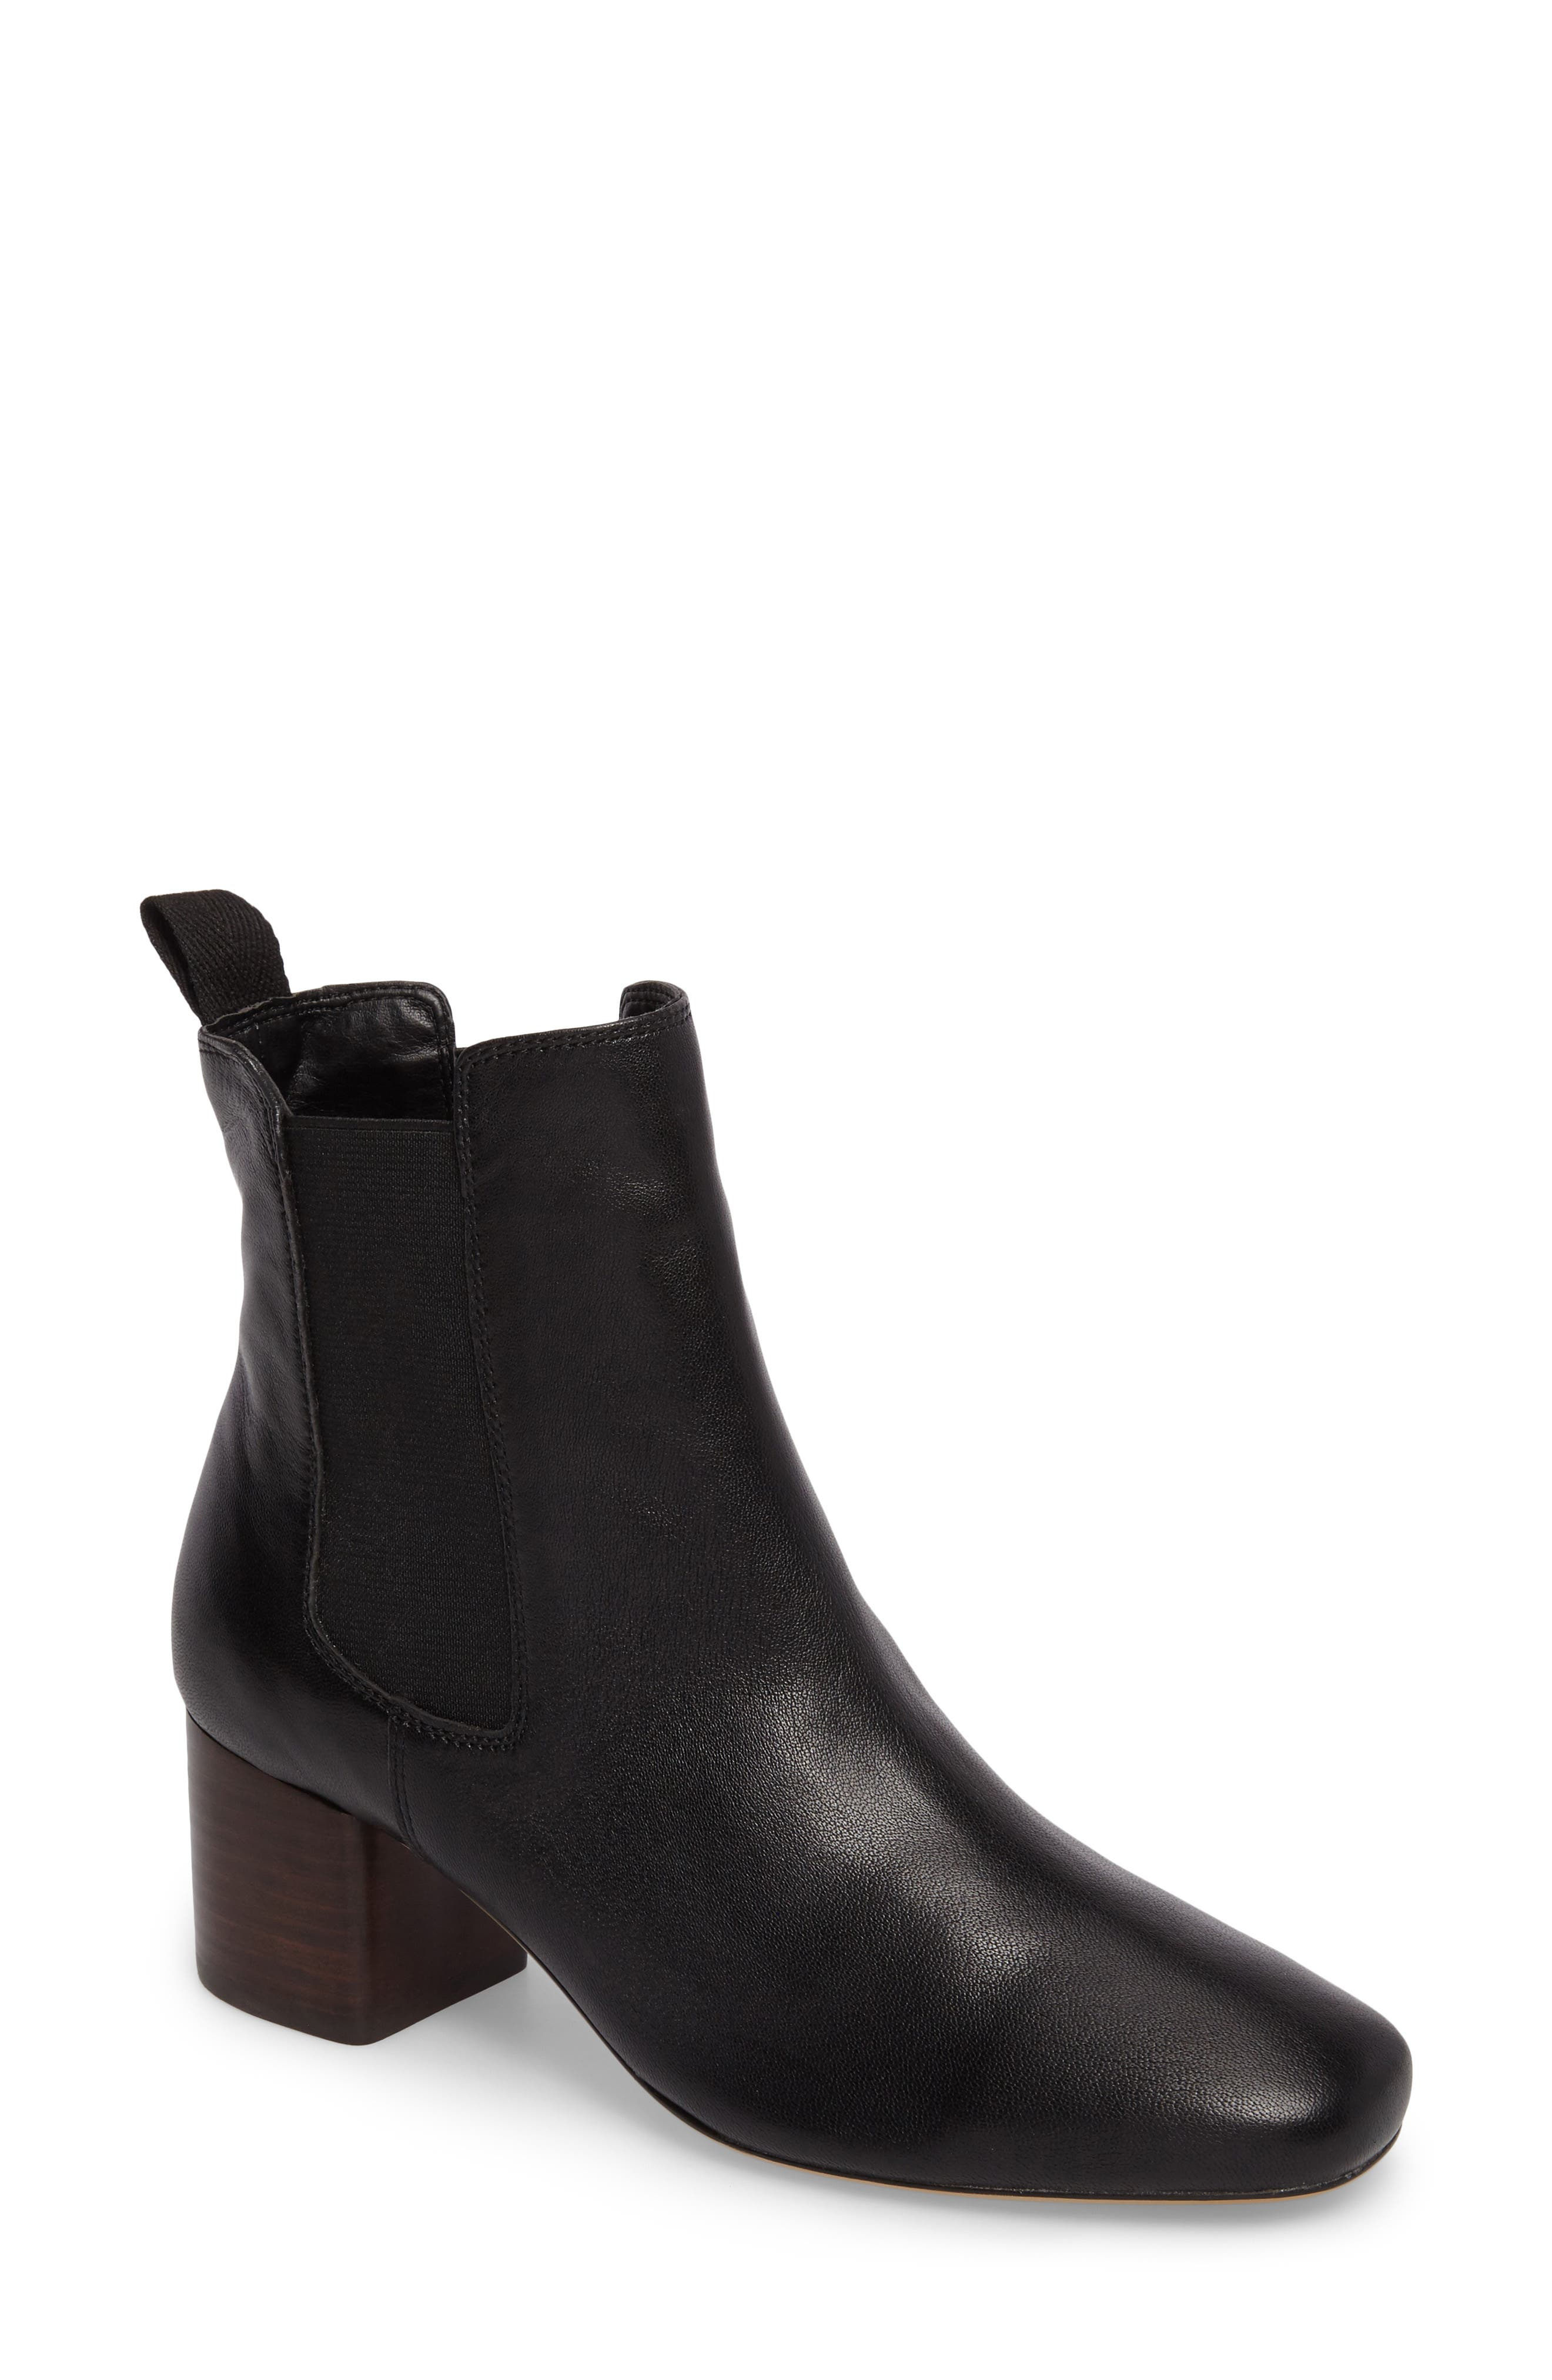 Alby Chelsea Bootie,                         Main,                         color, Black Nappa Leather